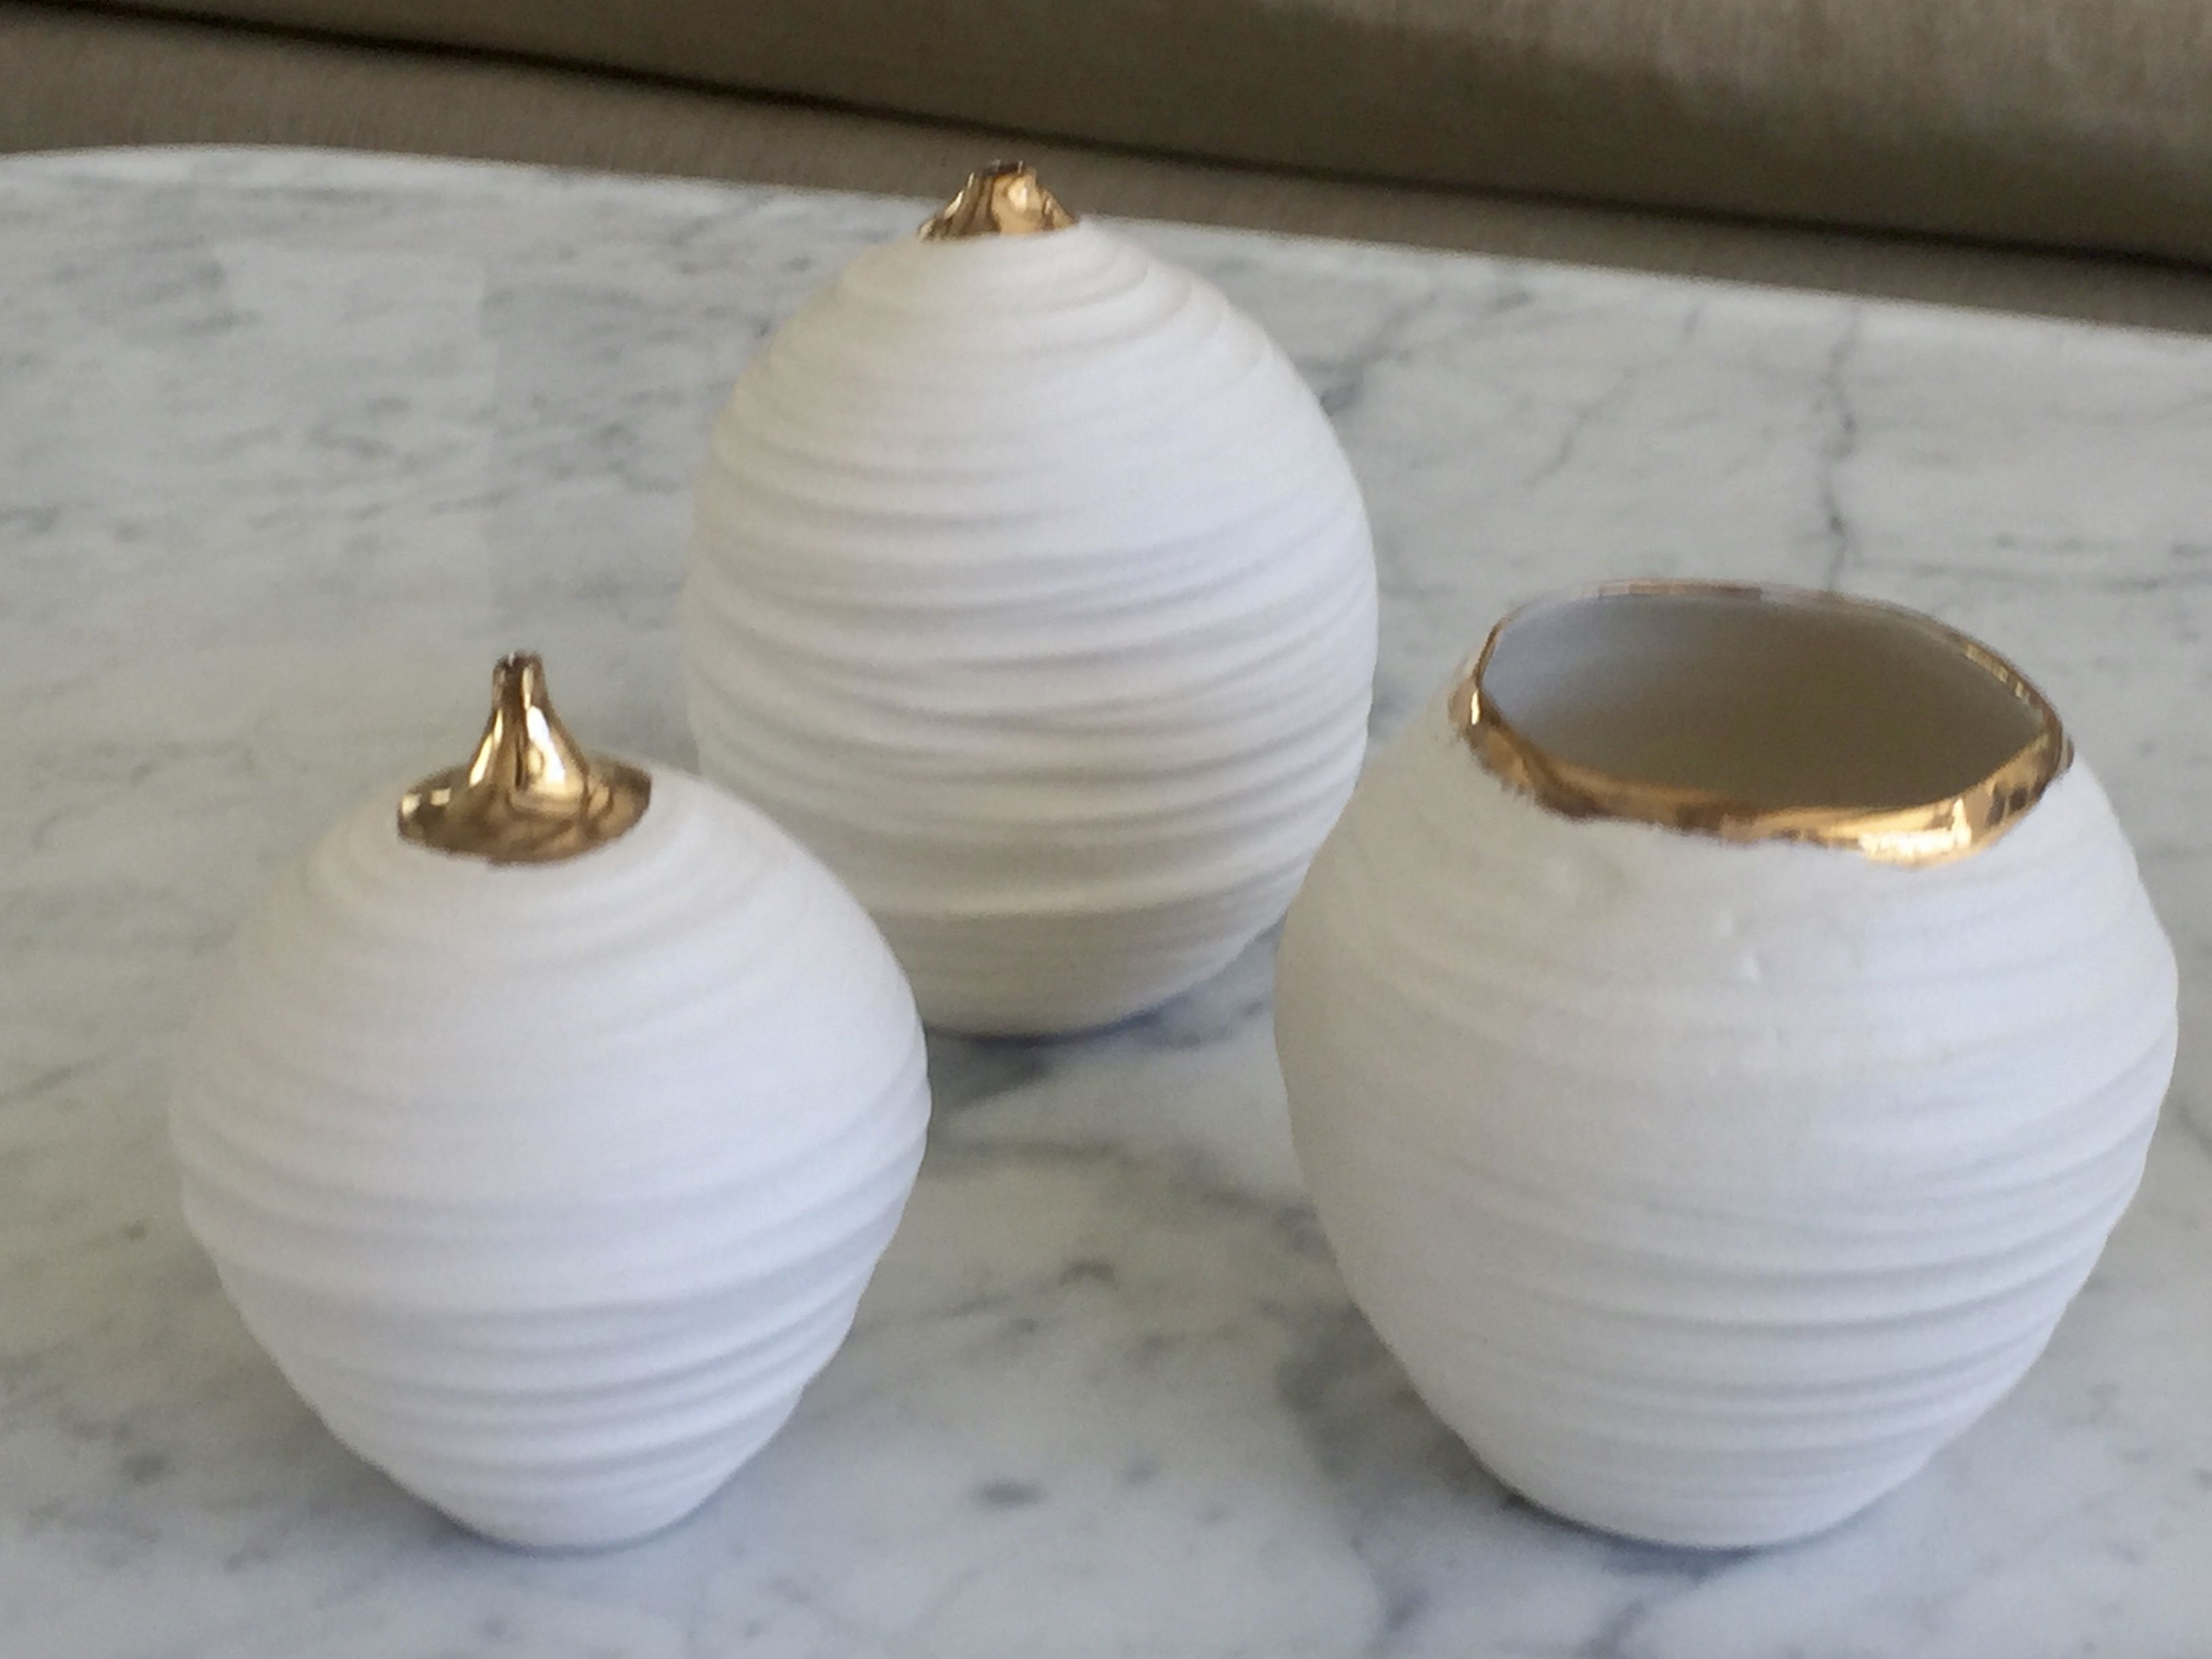 Porcelain Vase With Gold Rim By Elke Levine